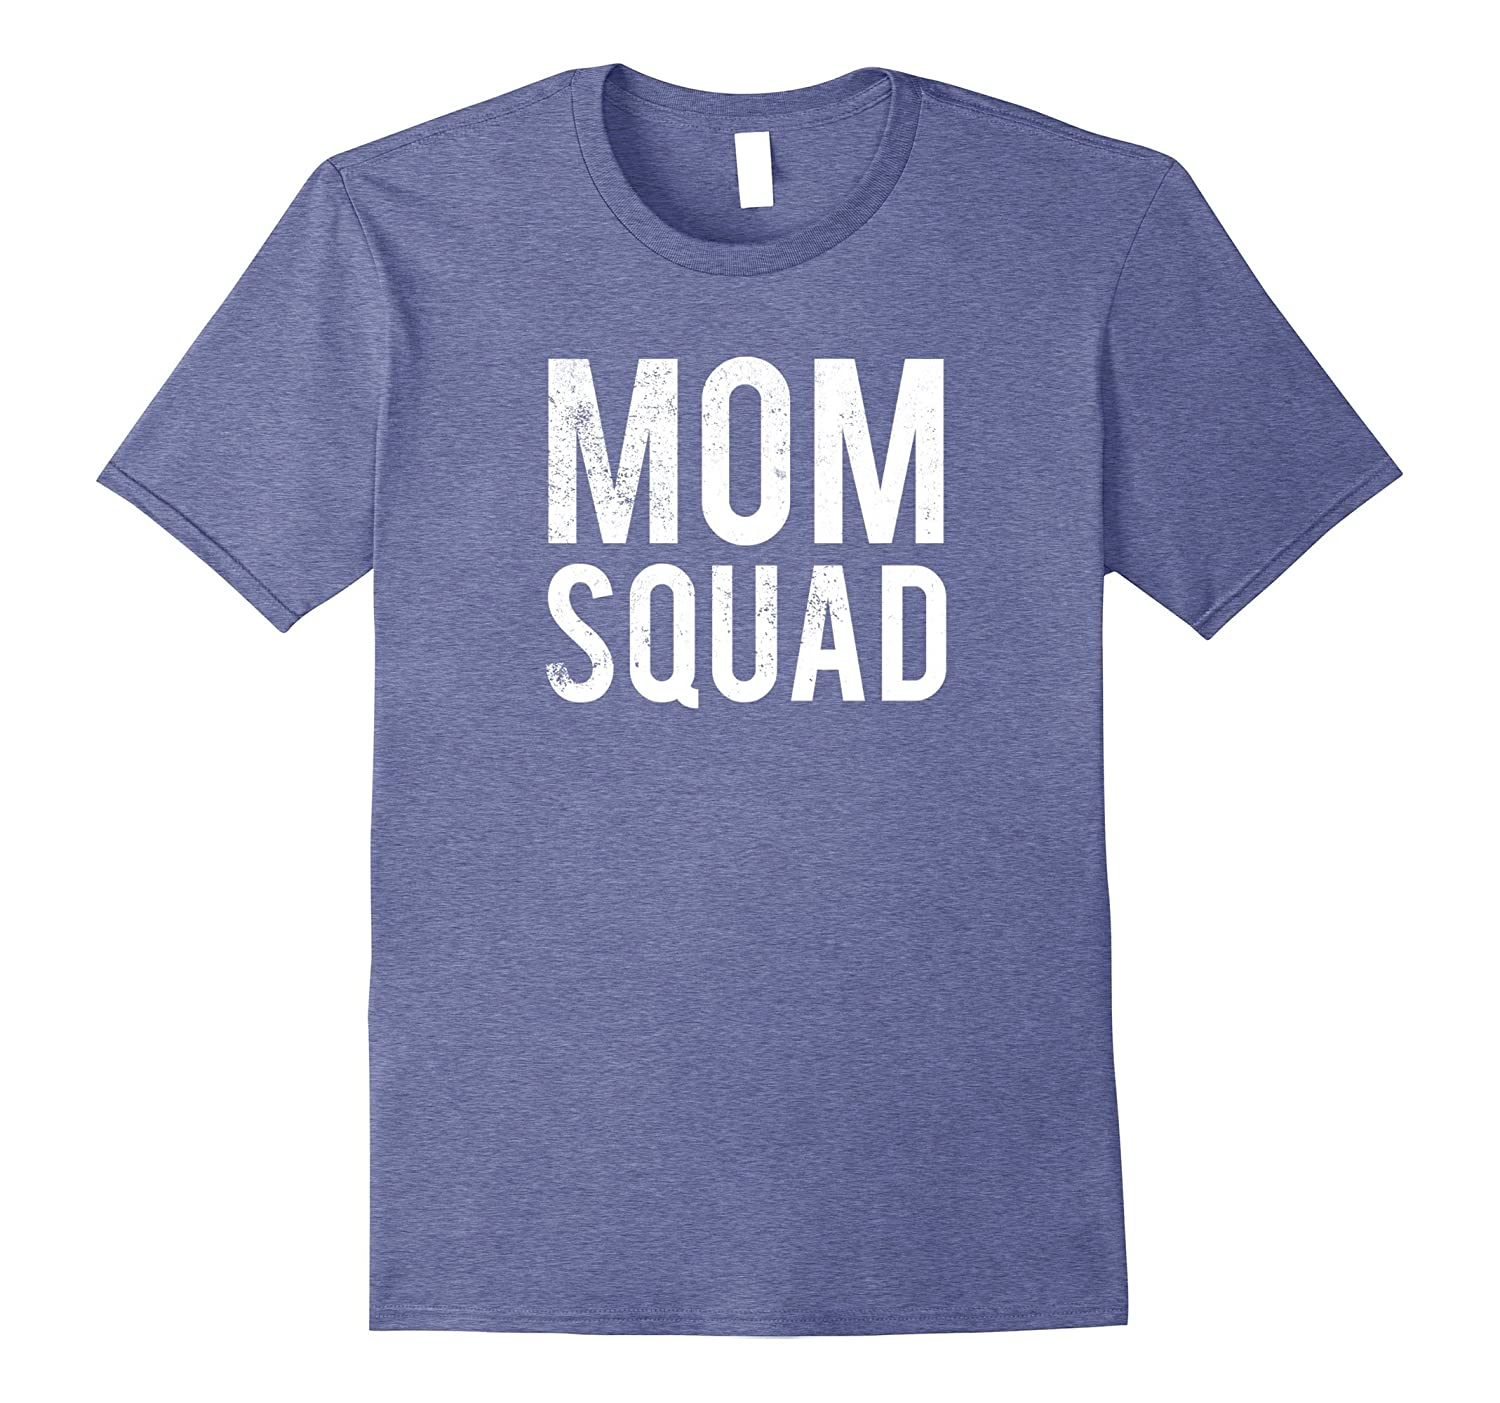 Mom Squad T-Shirt Funny Mom Humor-TJ